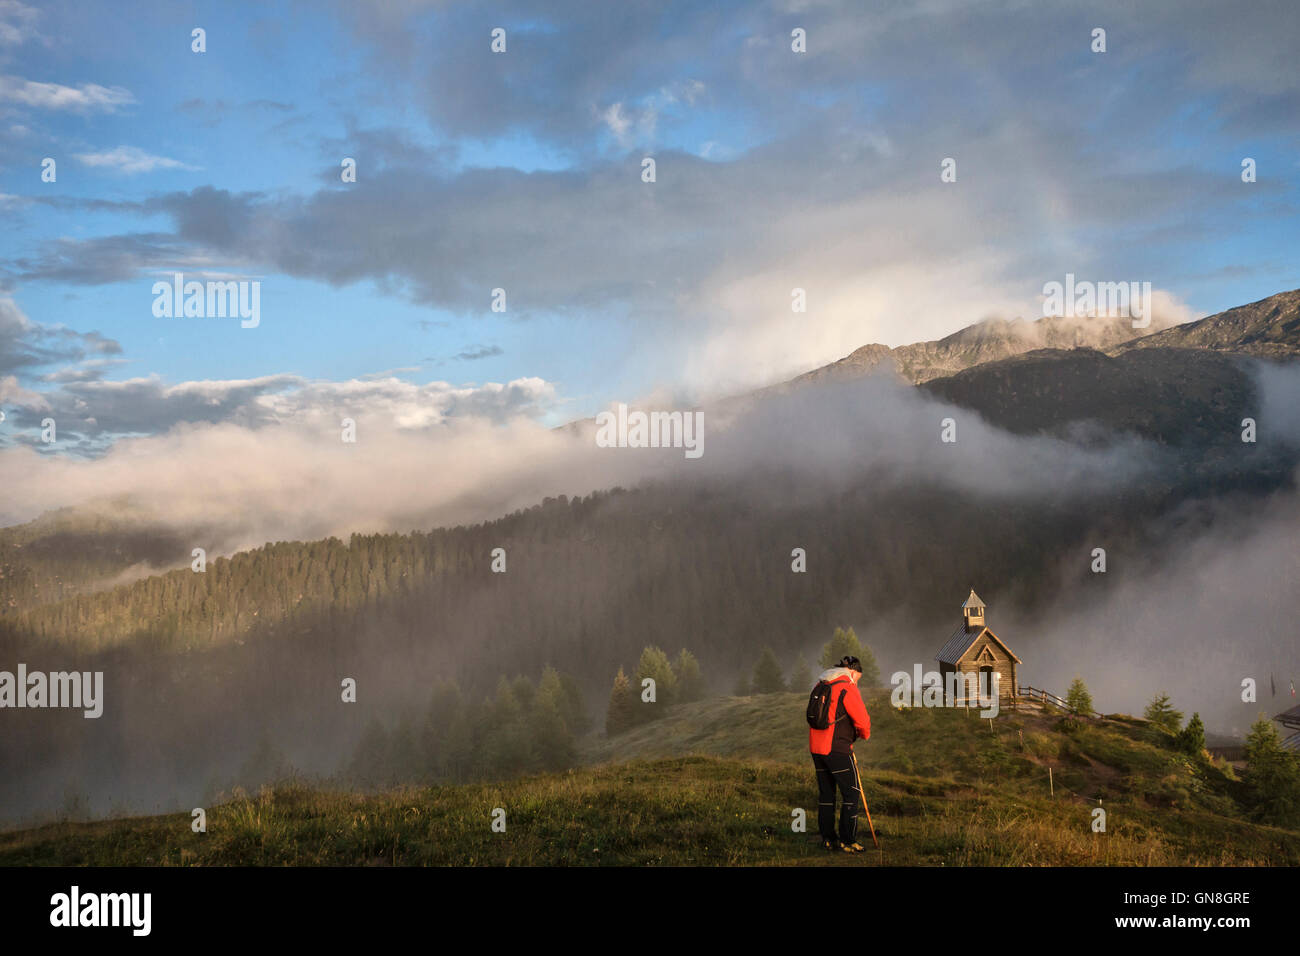 The Dolomites, Trentino, Italy. A walker pauses by the wooden chapel overlooking Passo di Valles  on the Alta Via - Stock Image